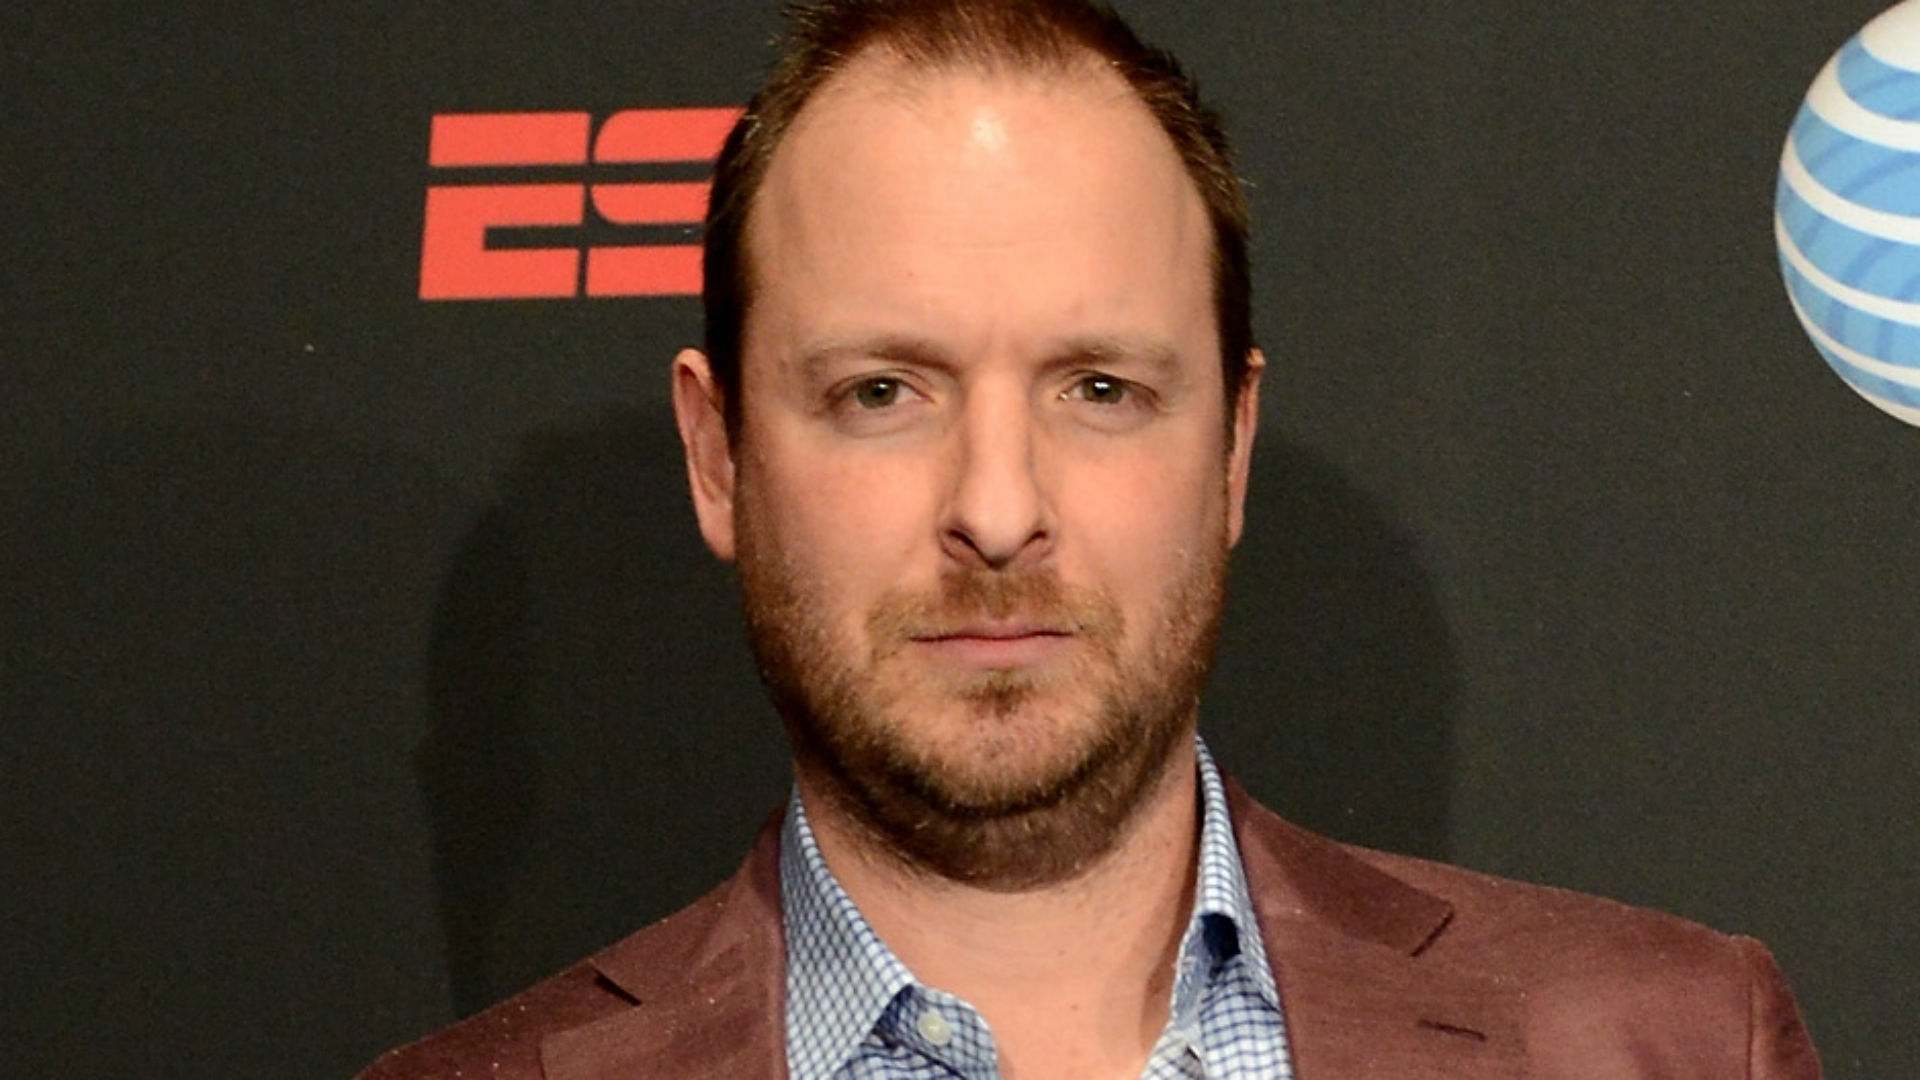 ESPN Radio Host Ryen Russillo Arrested for Criminal Entry